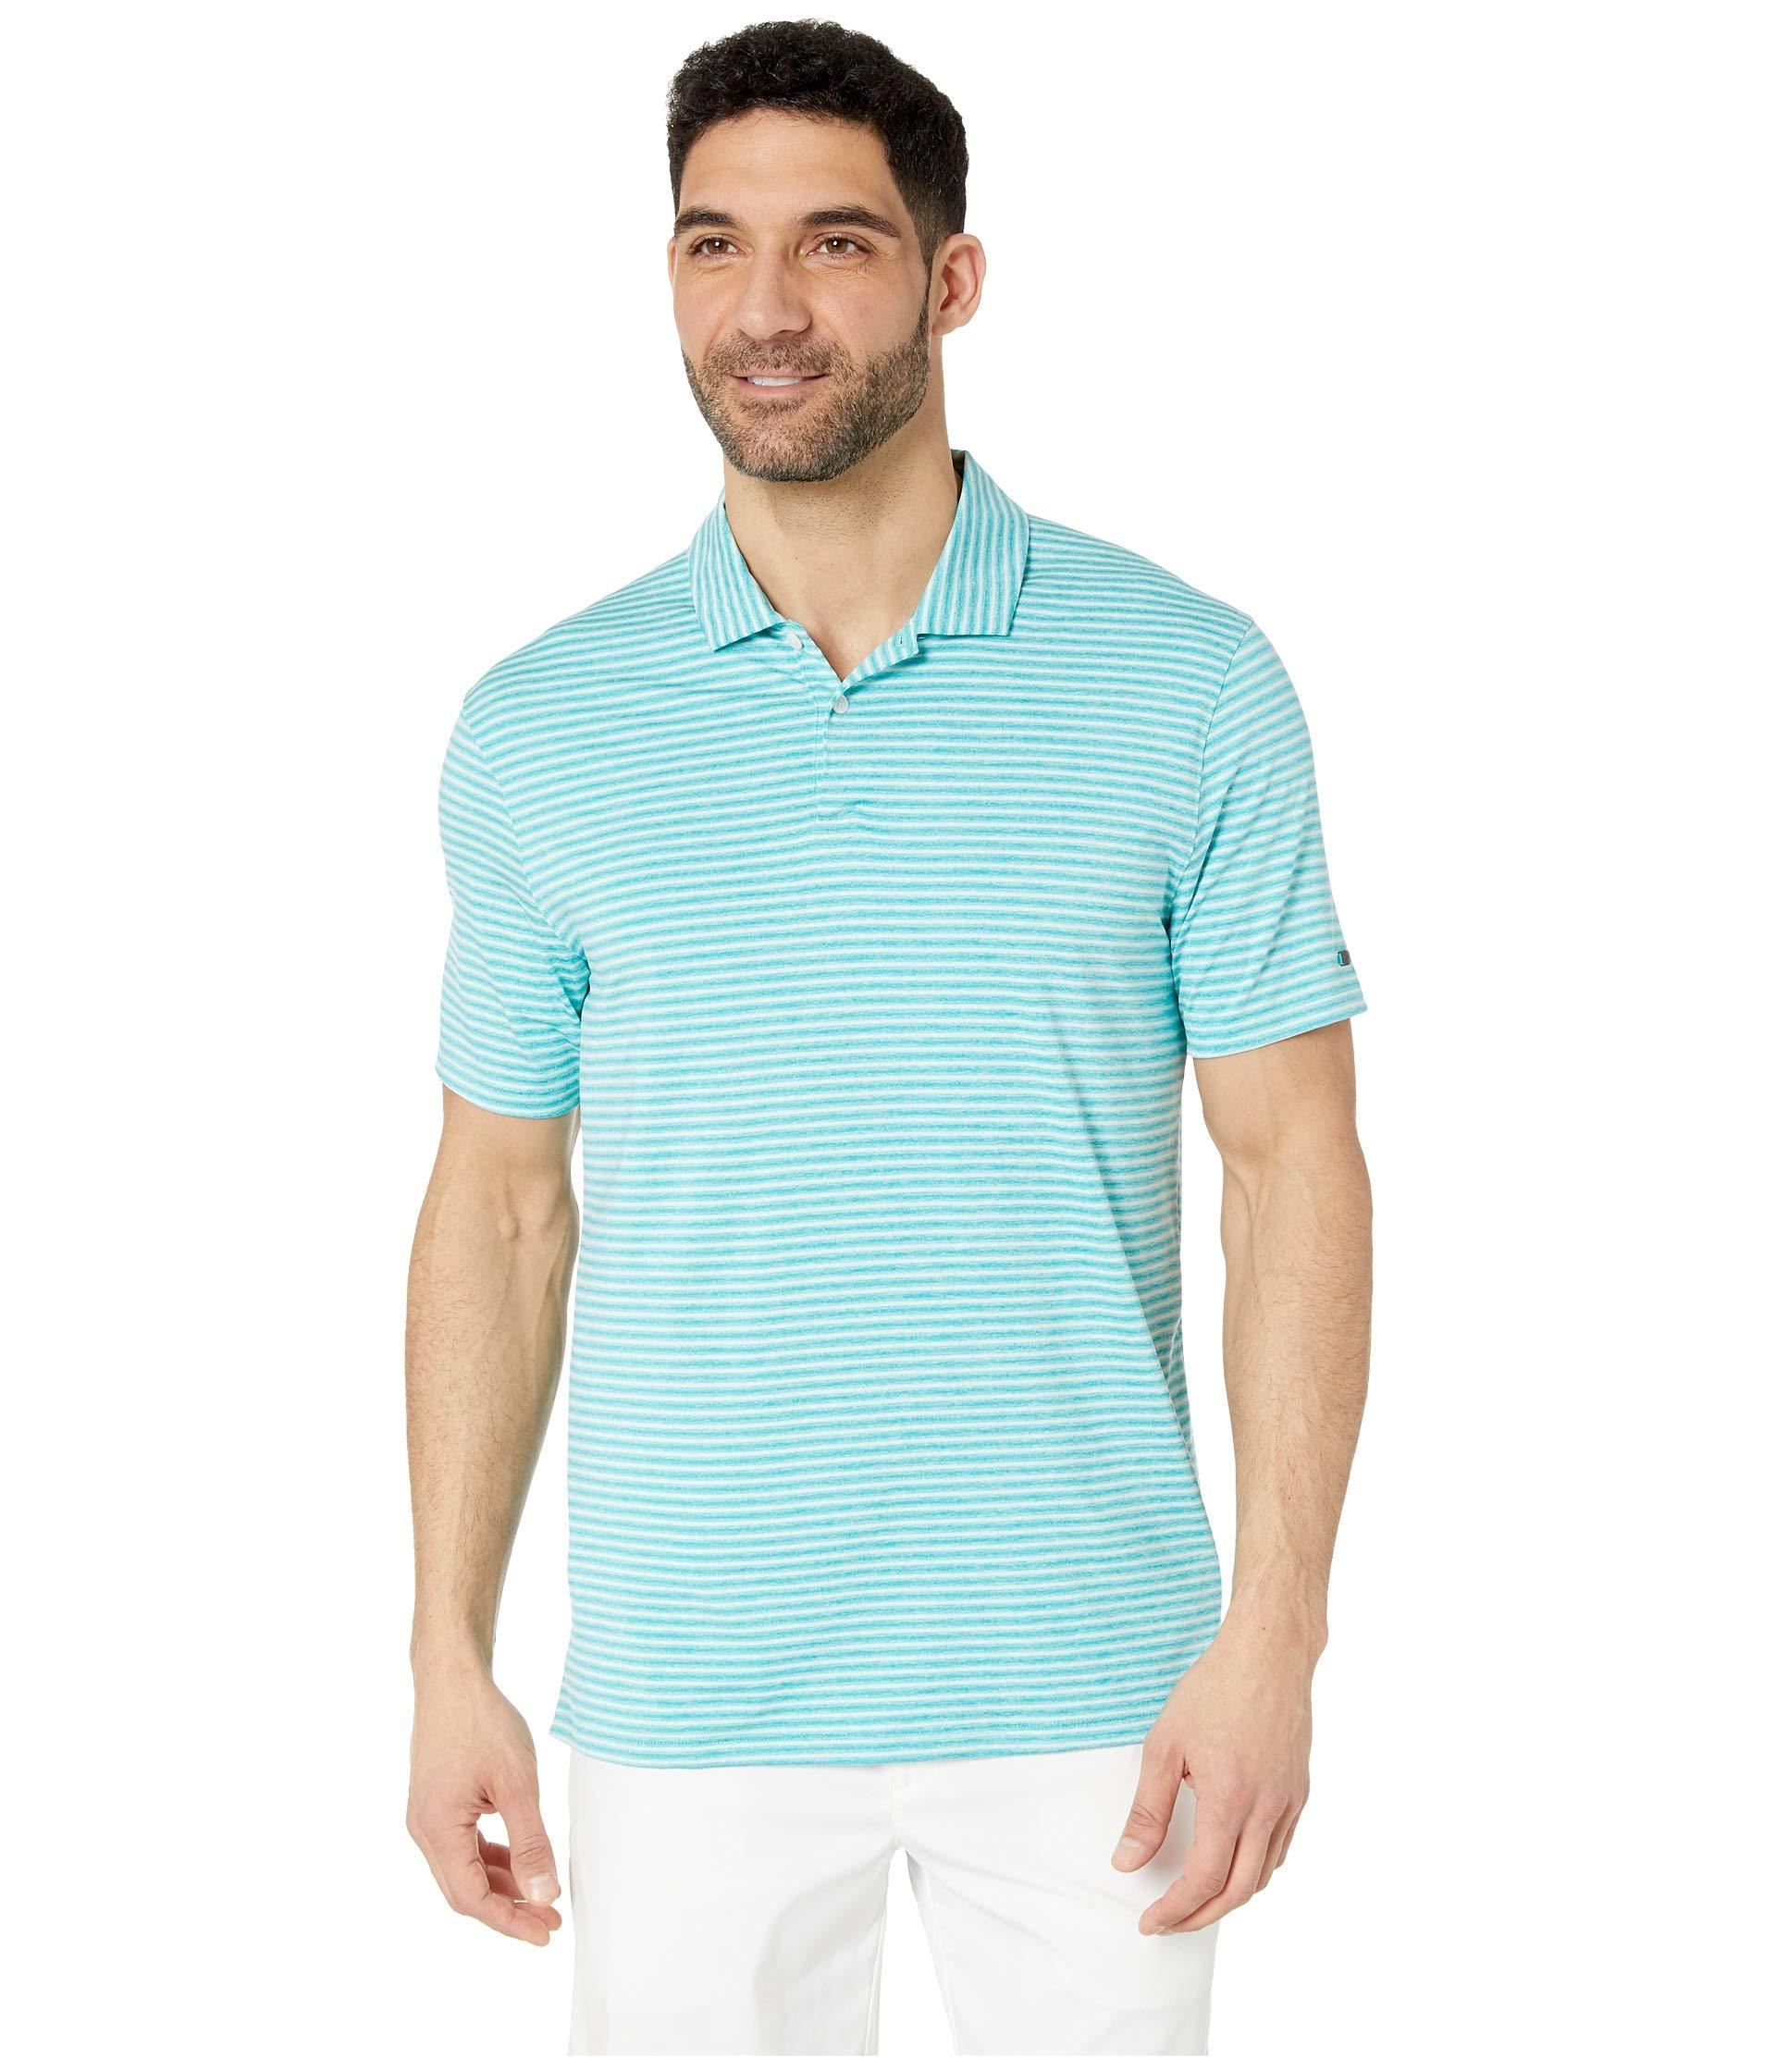 7befacd2 Lyst - Nike Dry Stripe Polo (black) Men's Clothing in Blue for Men